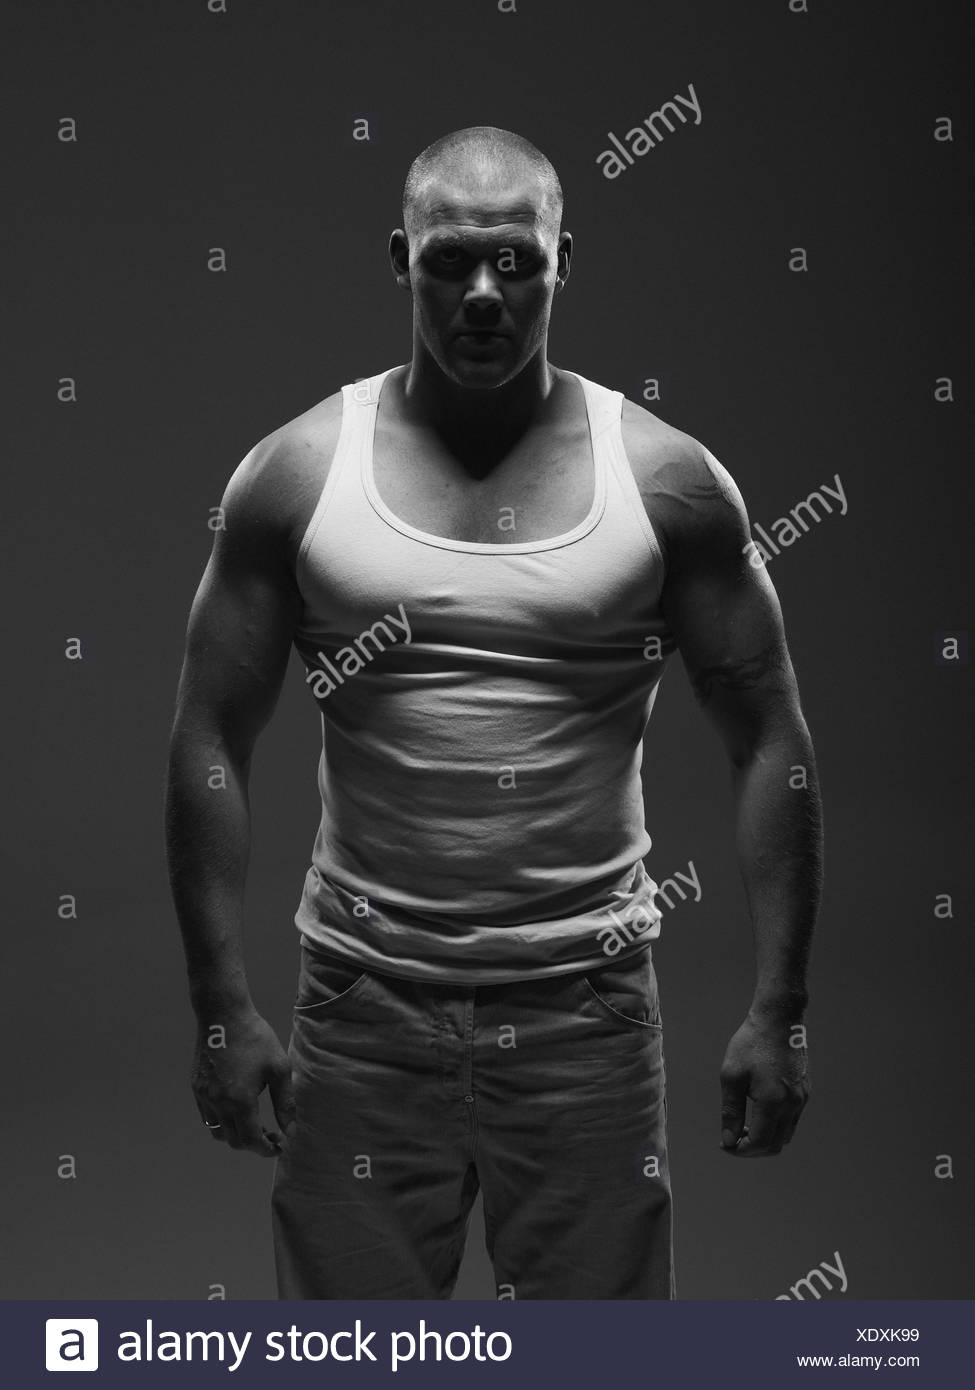 Athlete wearing tank top indoors - Stock Image